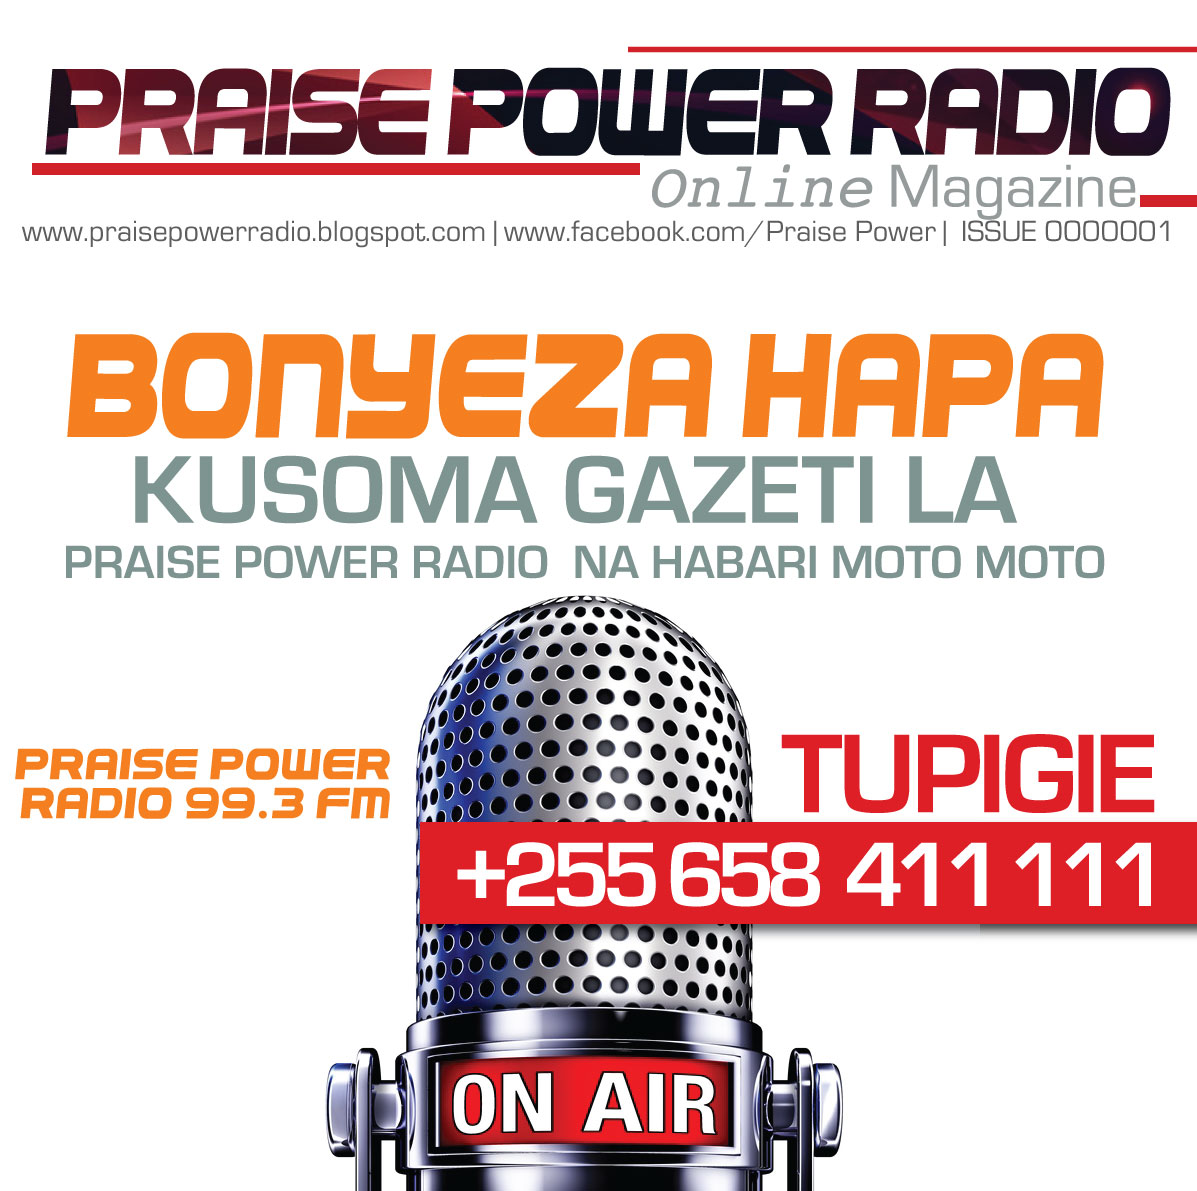 PRAISE POWER Online MAGAZINE